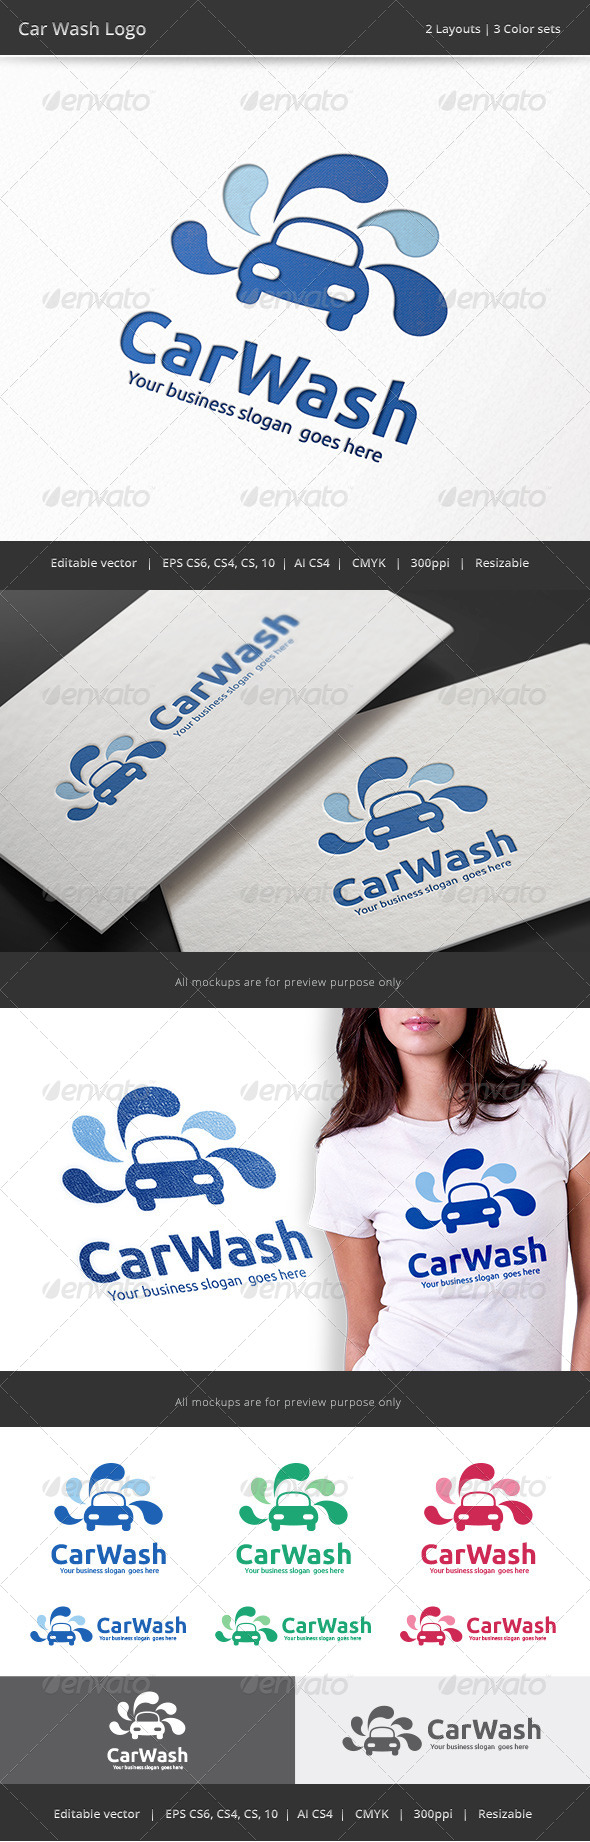 GraphicRiver Car Wash Logo 8742683